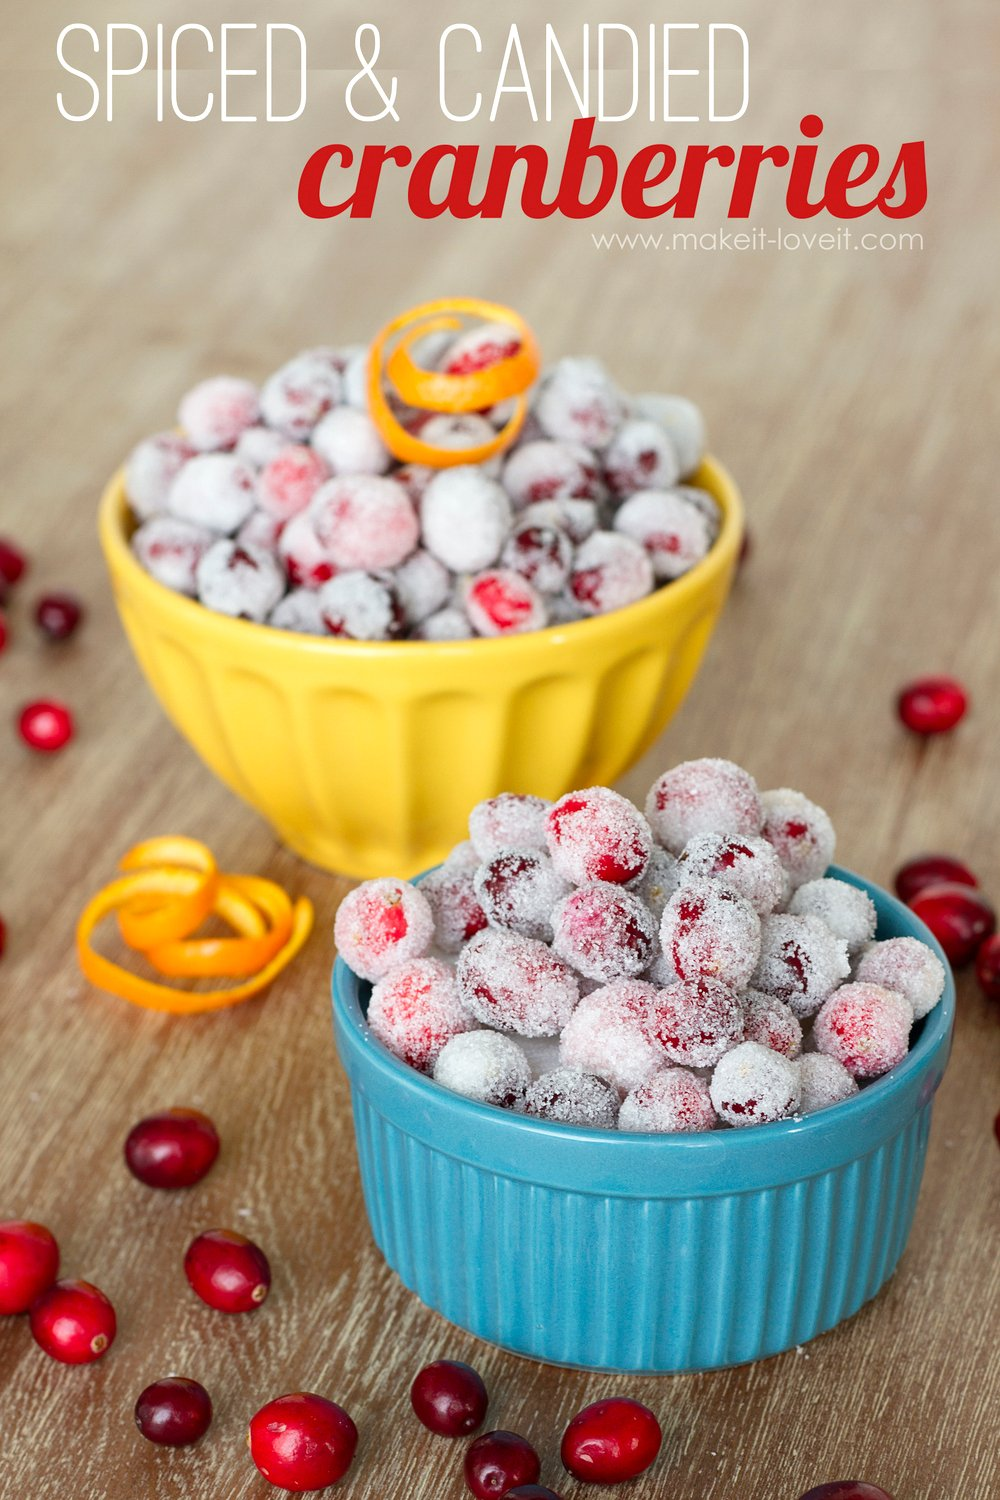 Spiced and candied fresh cranberries 1